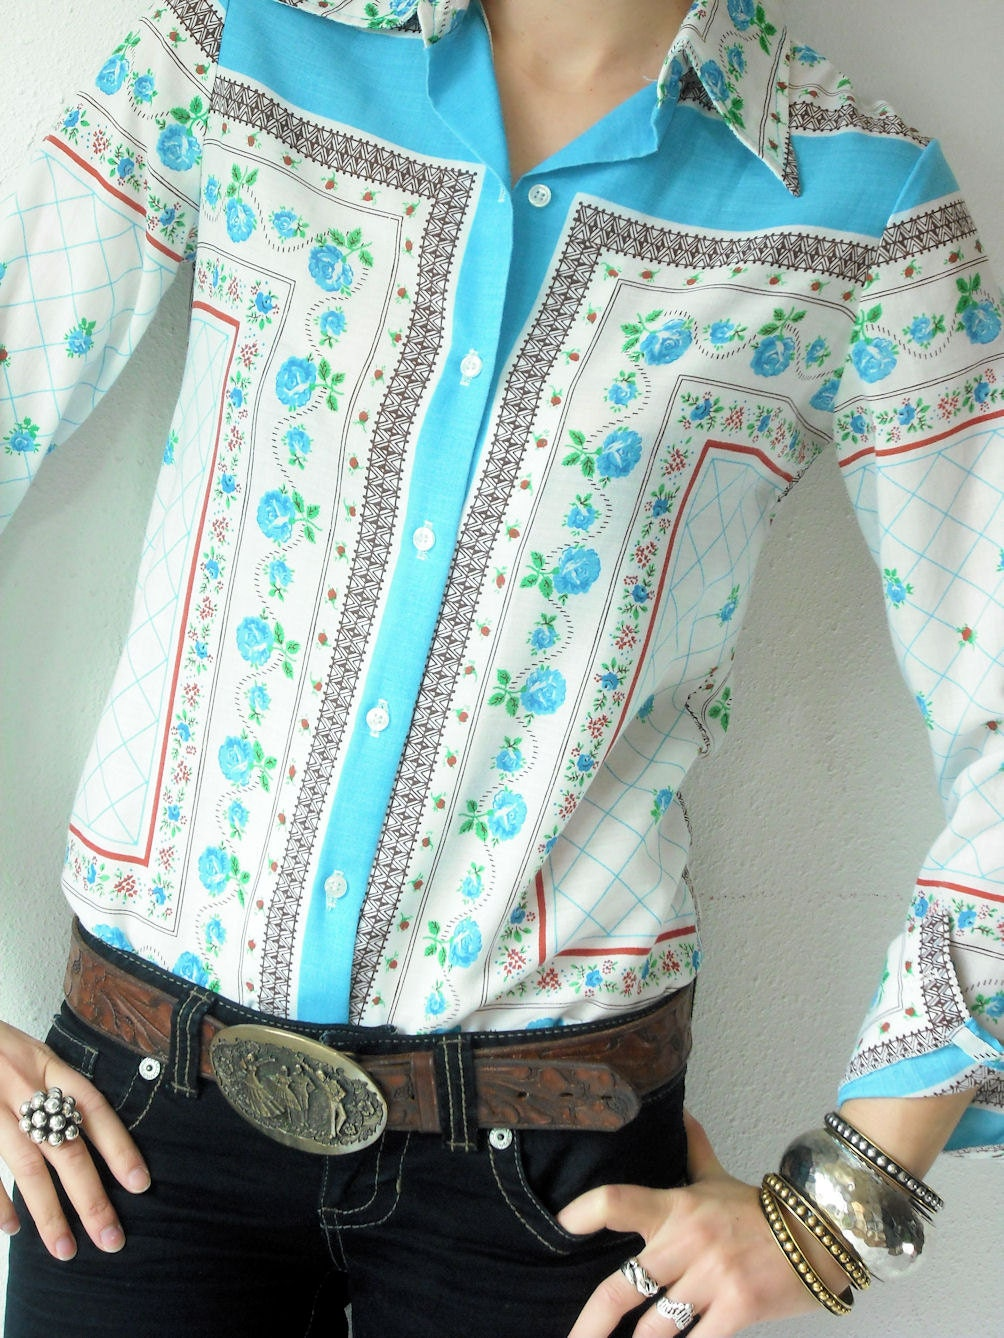 70's Vintage Handkerchief Bandana SCARF PRINT Blouse Button Up Floral White Blue and Clay